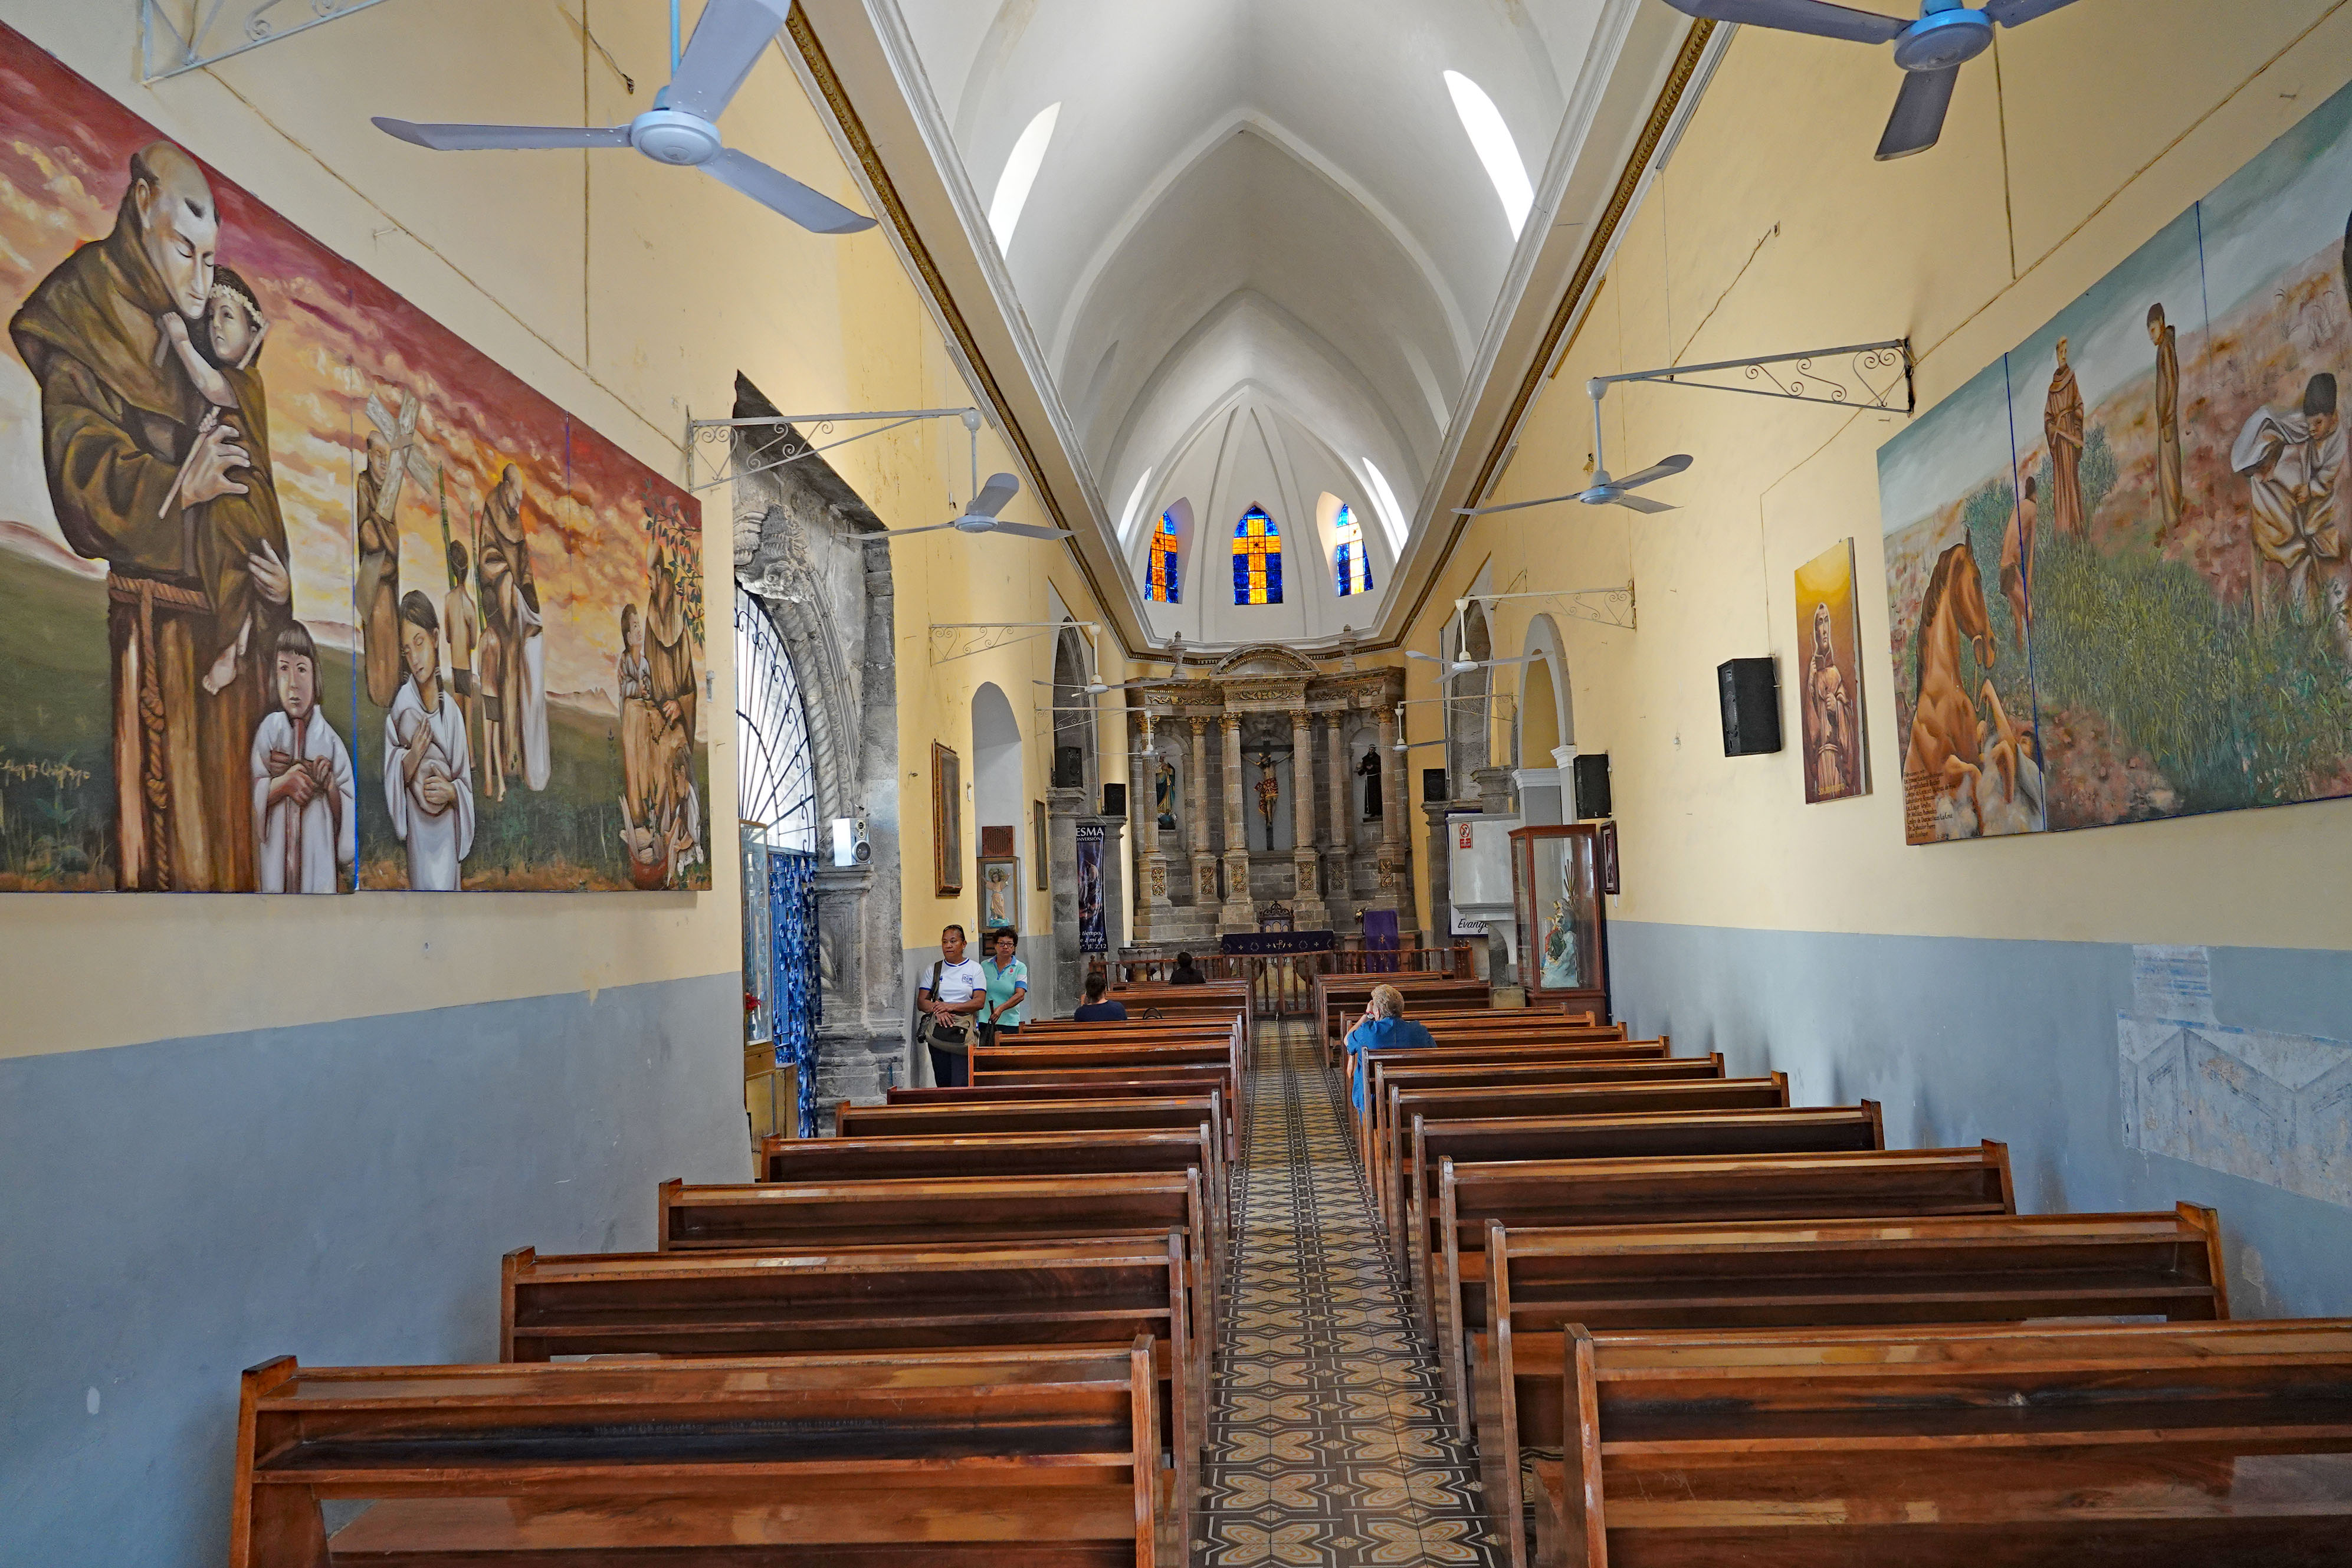 This chapel, built in Tepic, Nayarit, Mexico, in 1784, pays homage to Fray Junipero Serra. He resided in Tepic before setting out to civilize California. Photo: Fred Swegles